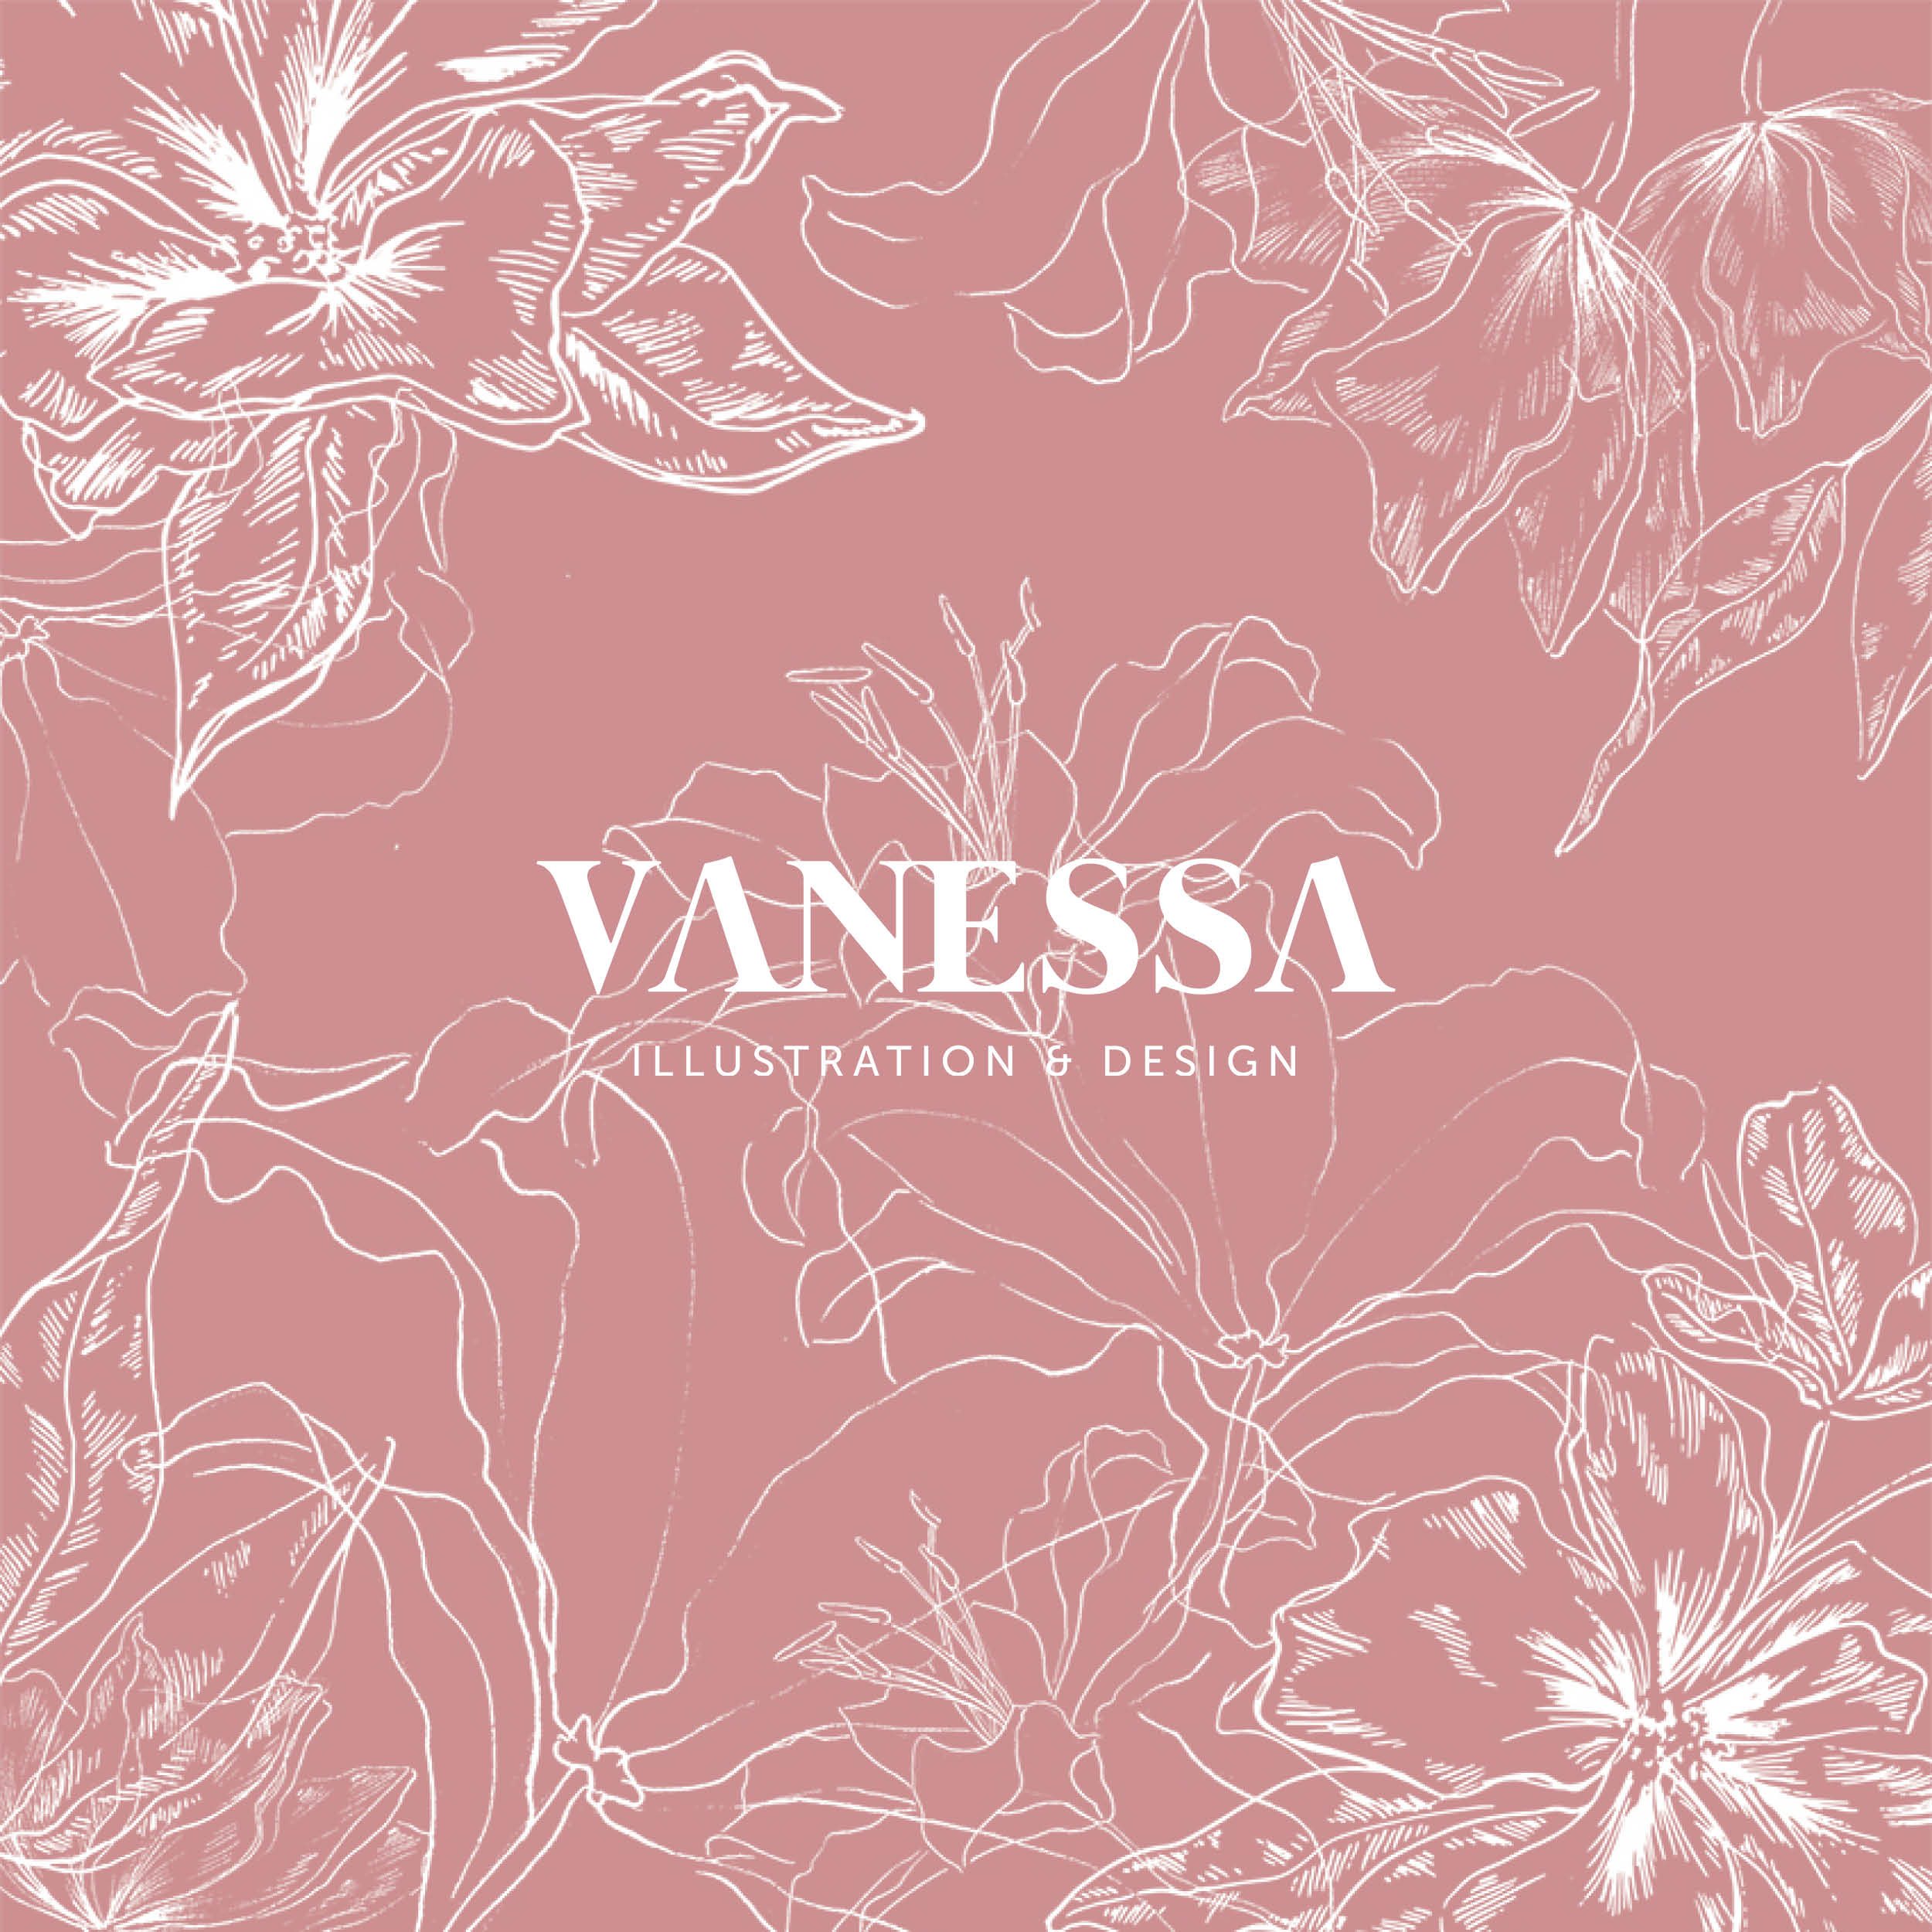 Vanessa Vanderhaven Illustration and Design5.jpg